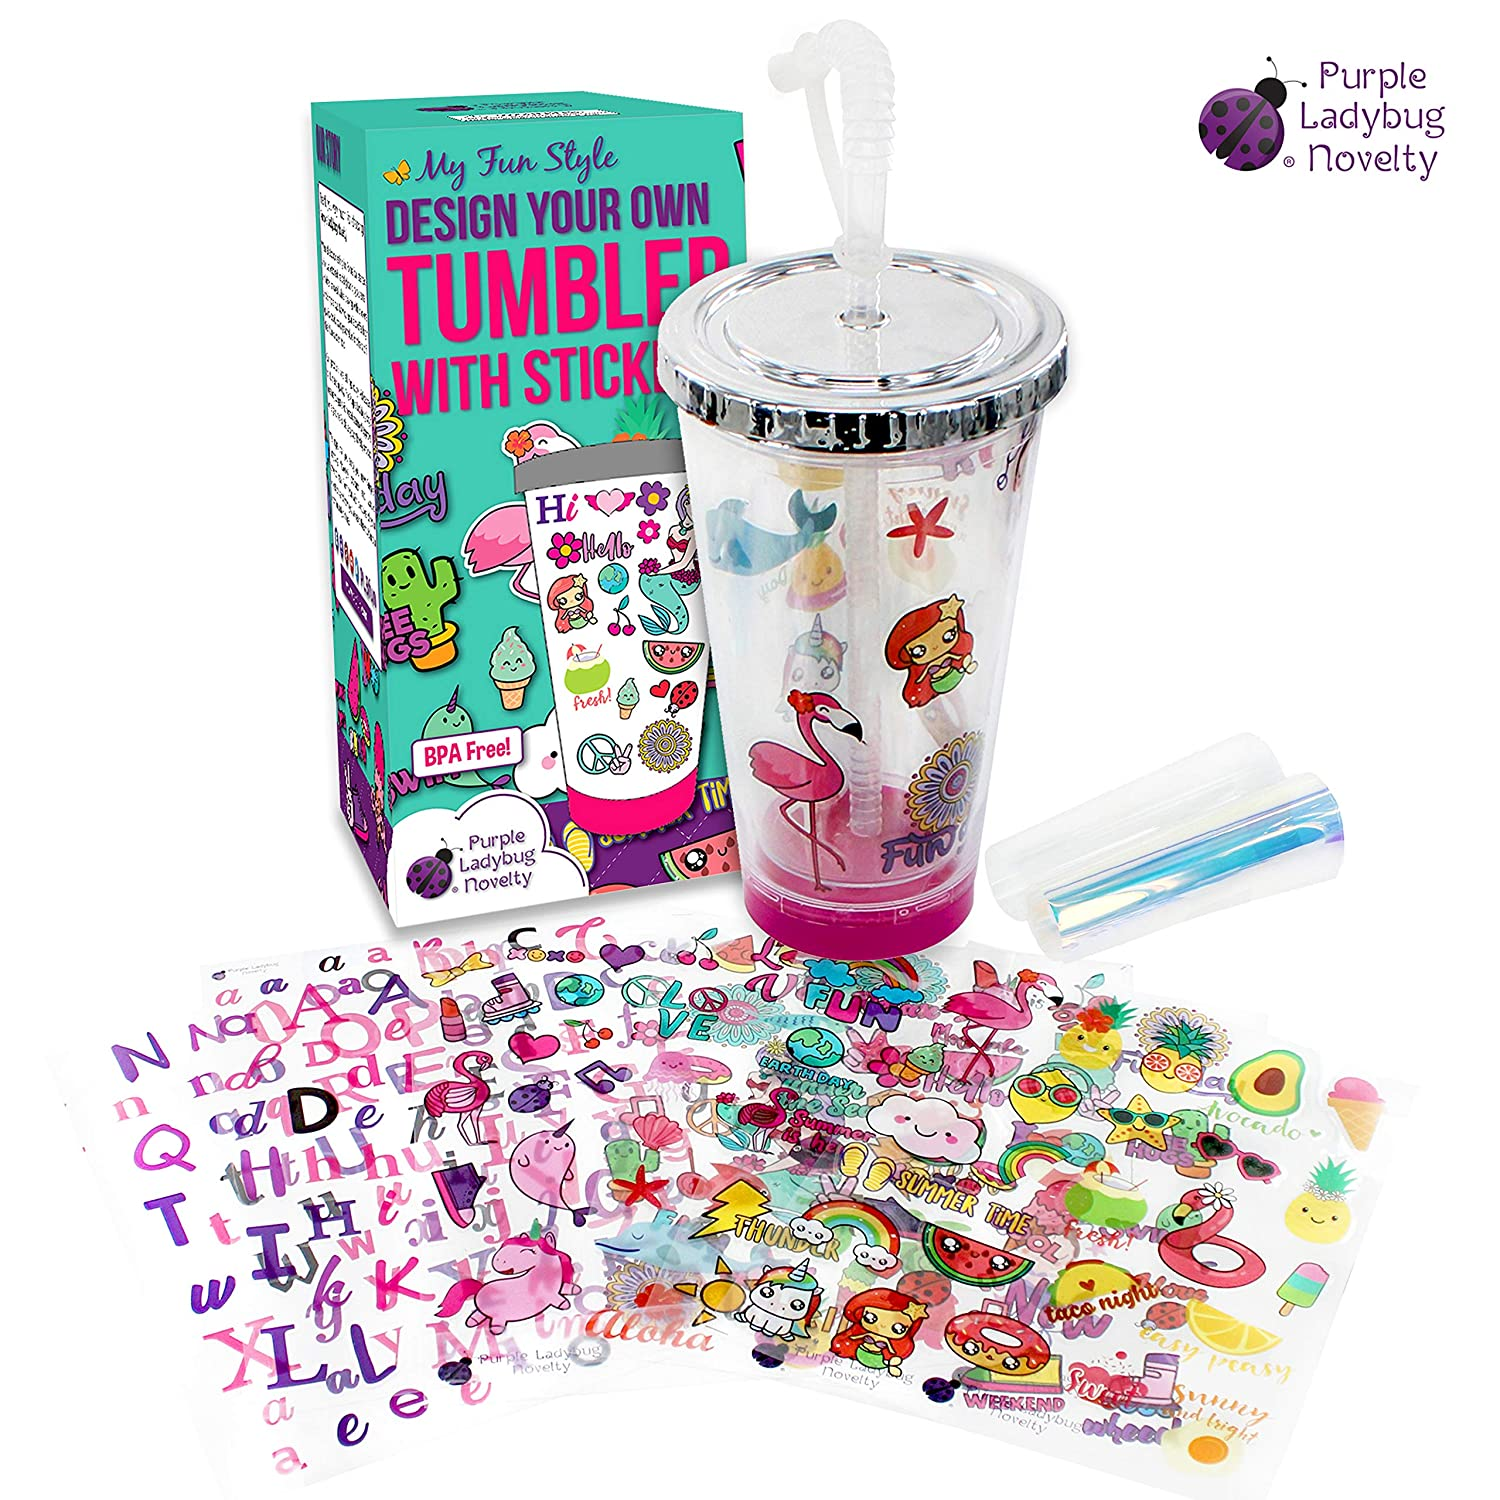 Create Your Own Personalized Tumbler for Girls with Waterproof Tumbler Stickers  Insulated Kids Tumbler with Lid and Straw   Makes a Great Gift for Gift  Fun DIY Art and Craft Kit for Children